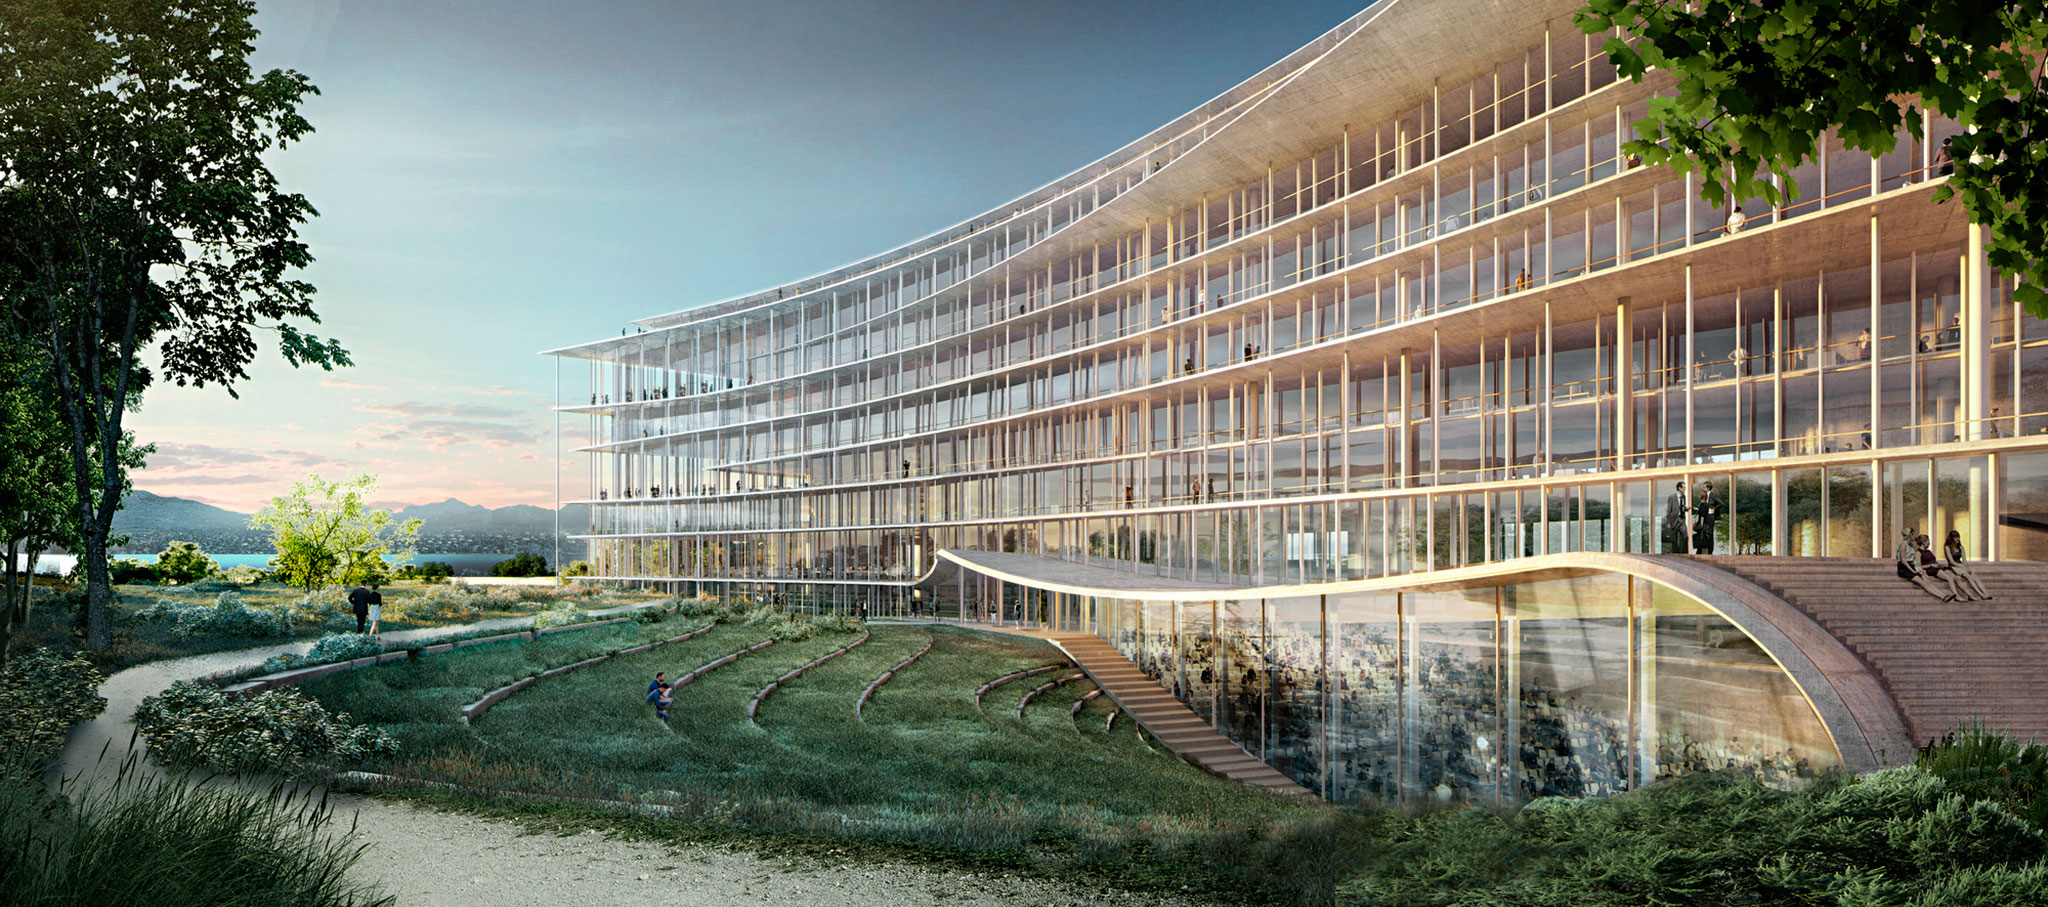 Headquarters of Lombard Odier: lots of nature around the banking center by Herzog & de Meuron